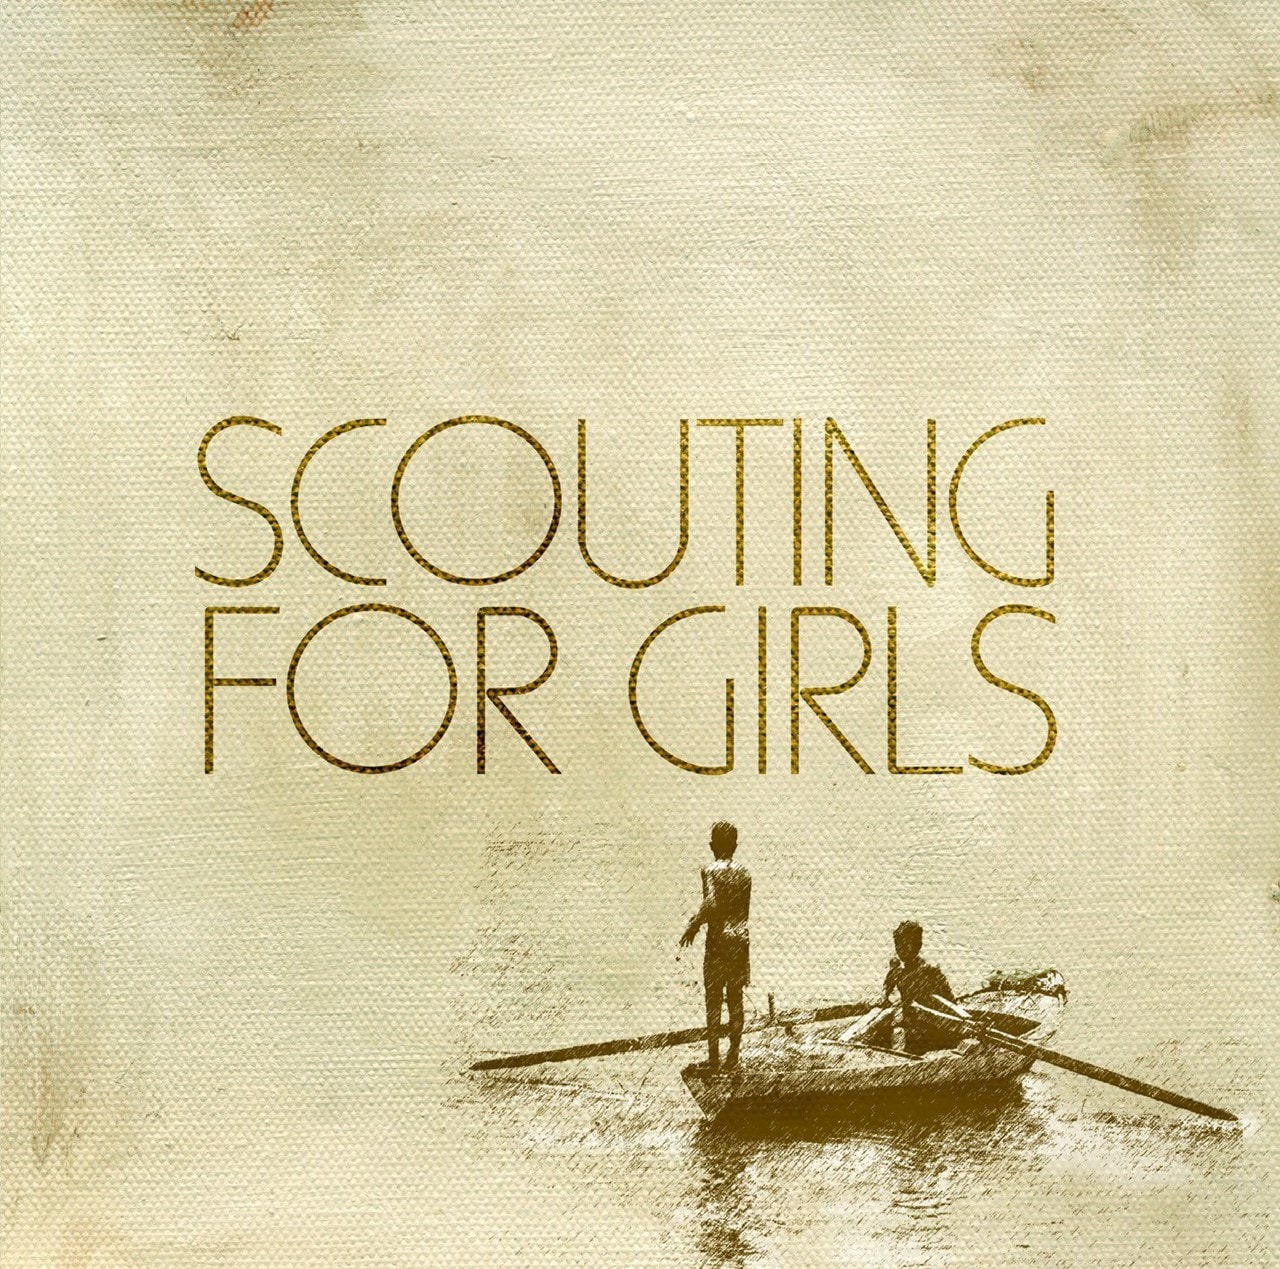 Scouting for Girls - 1